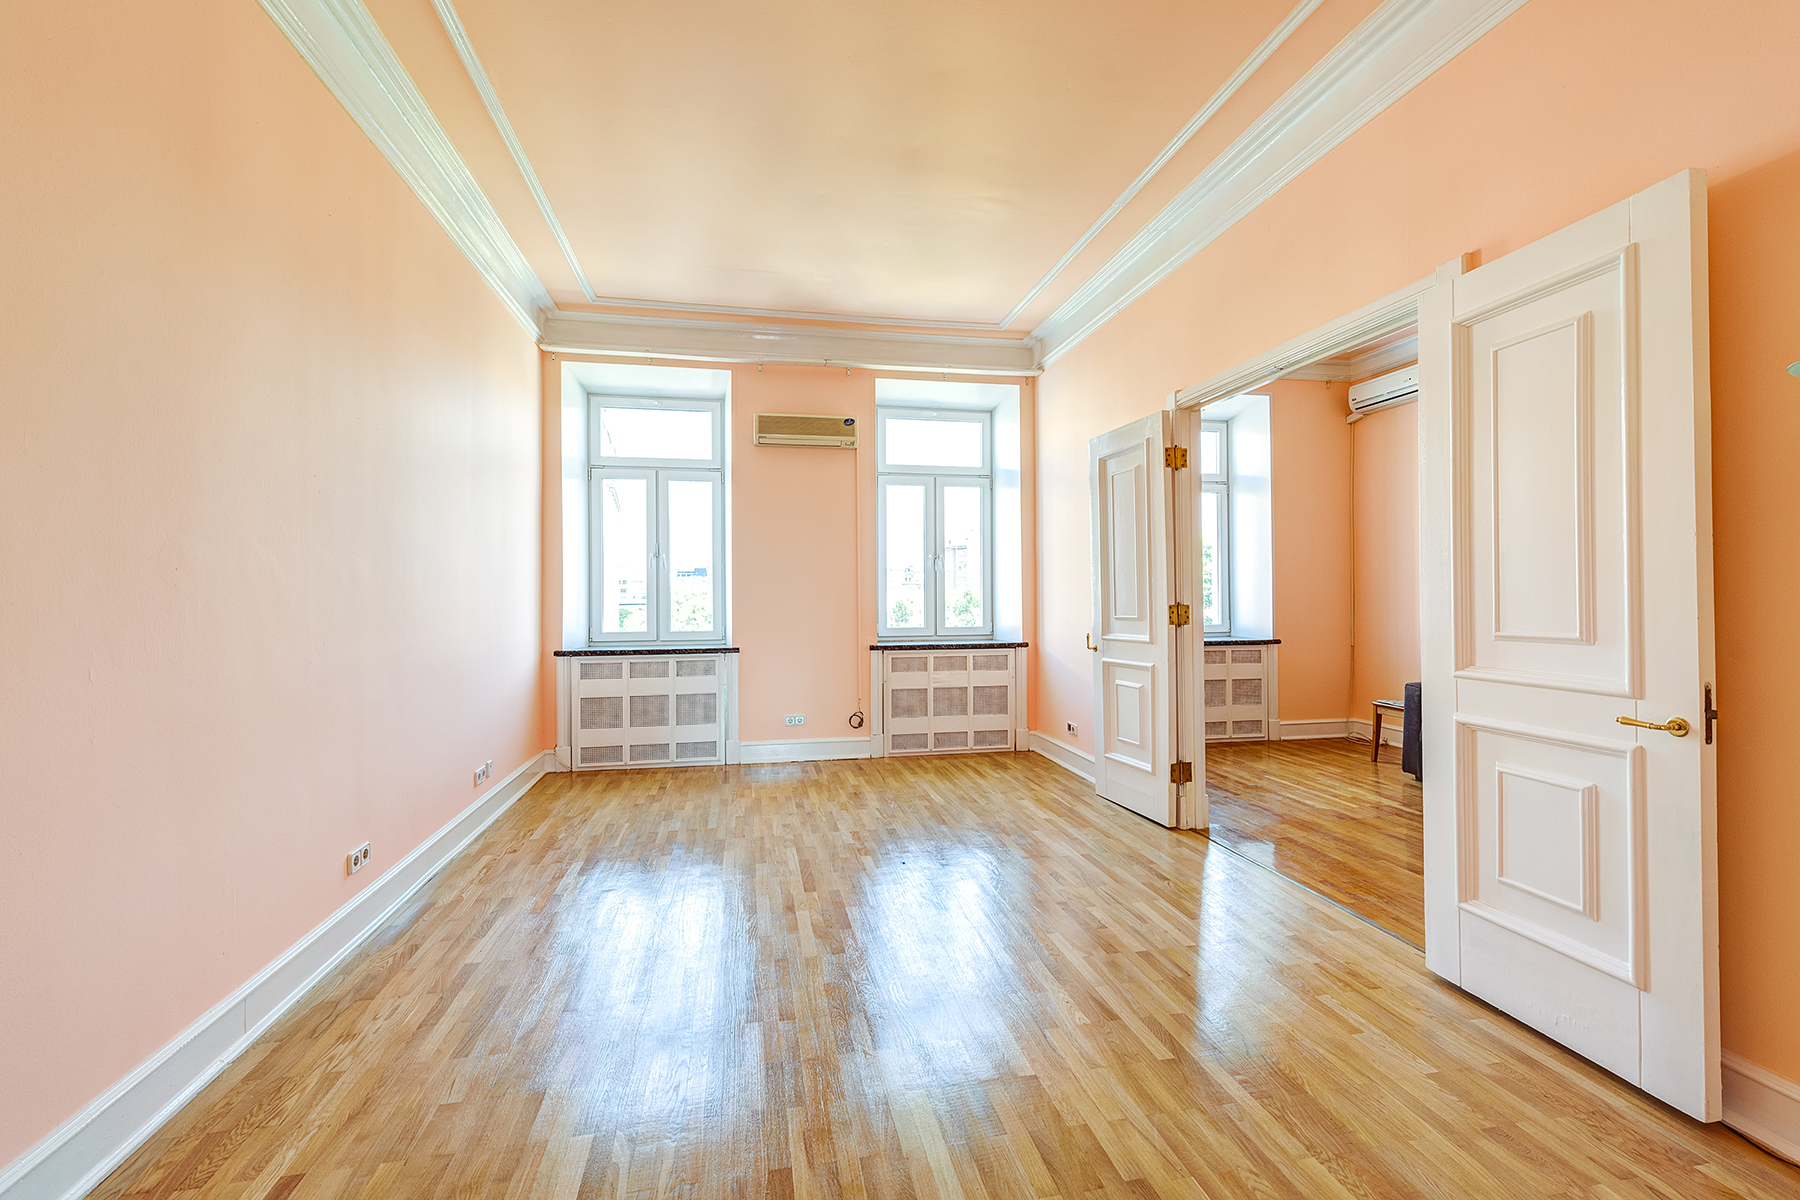 Single Family Home for Rent at The apartment in Denezhny Lane Moscow, Moscow City, Russia